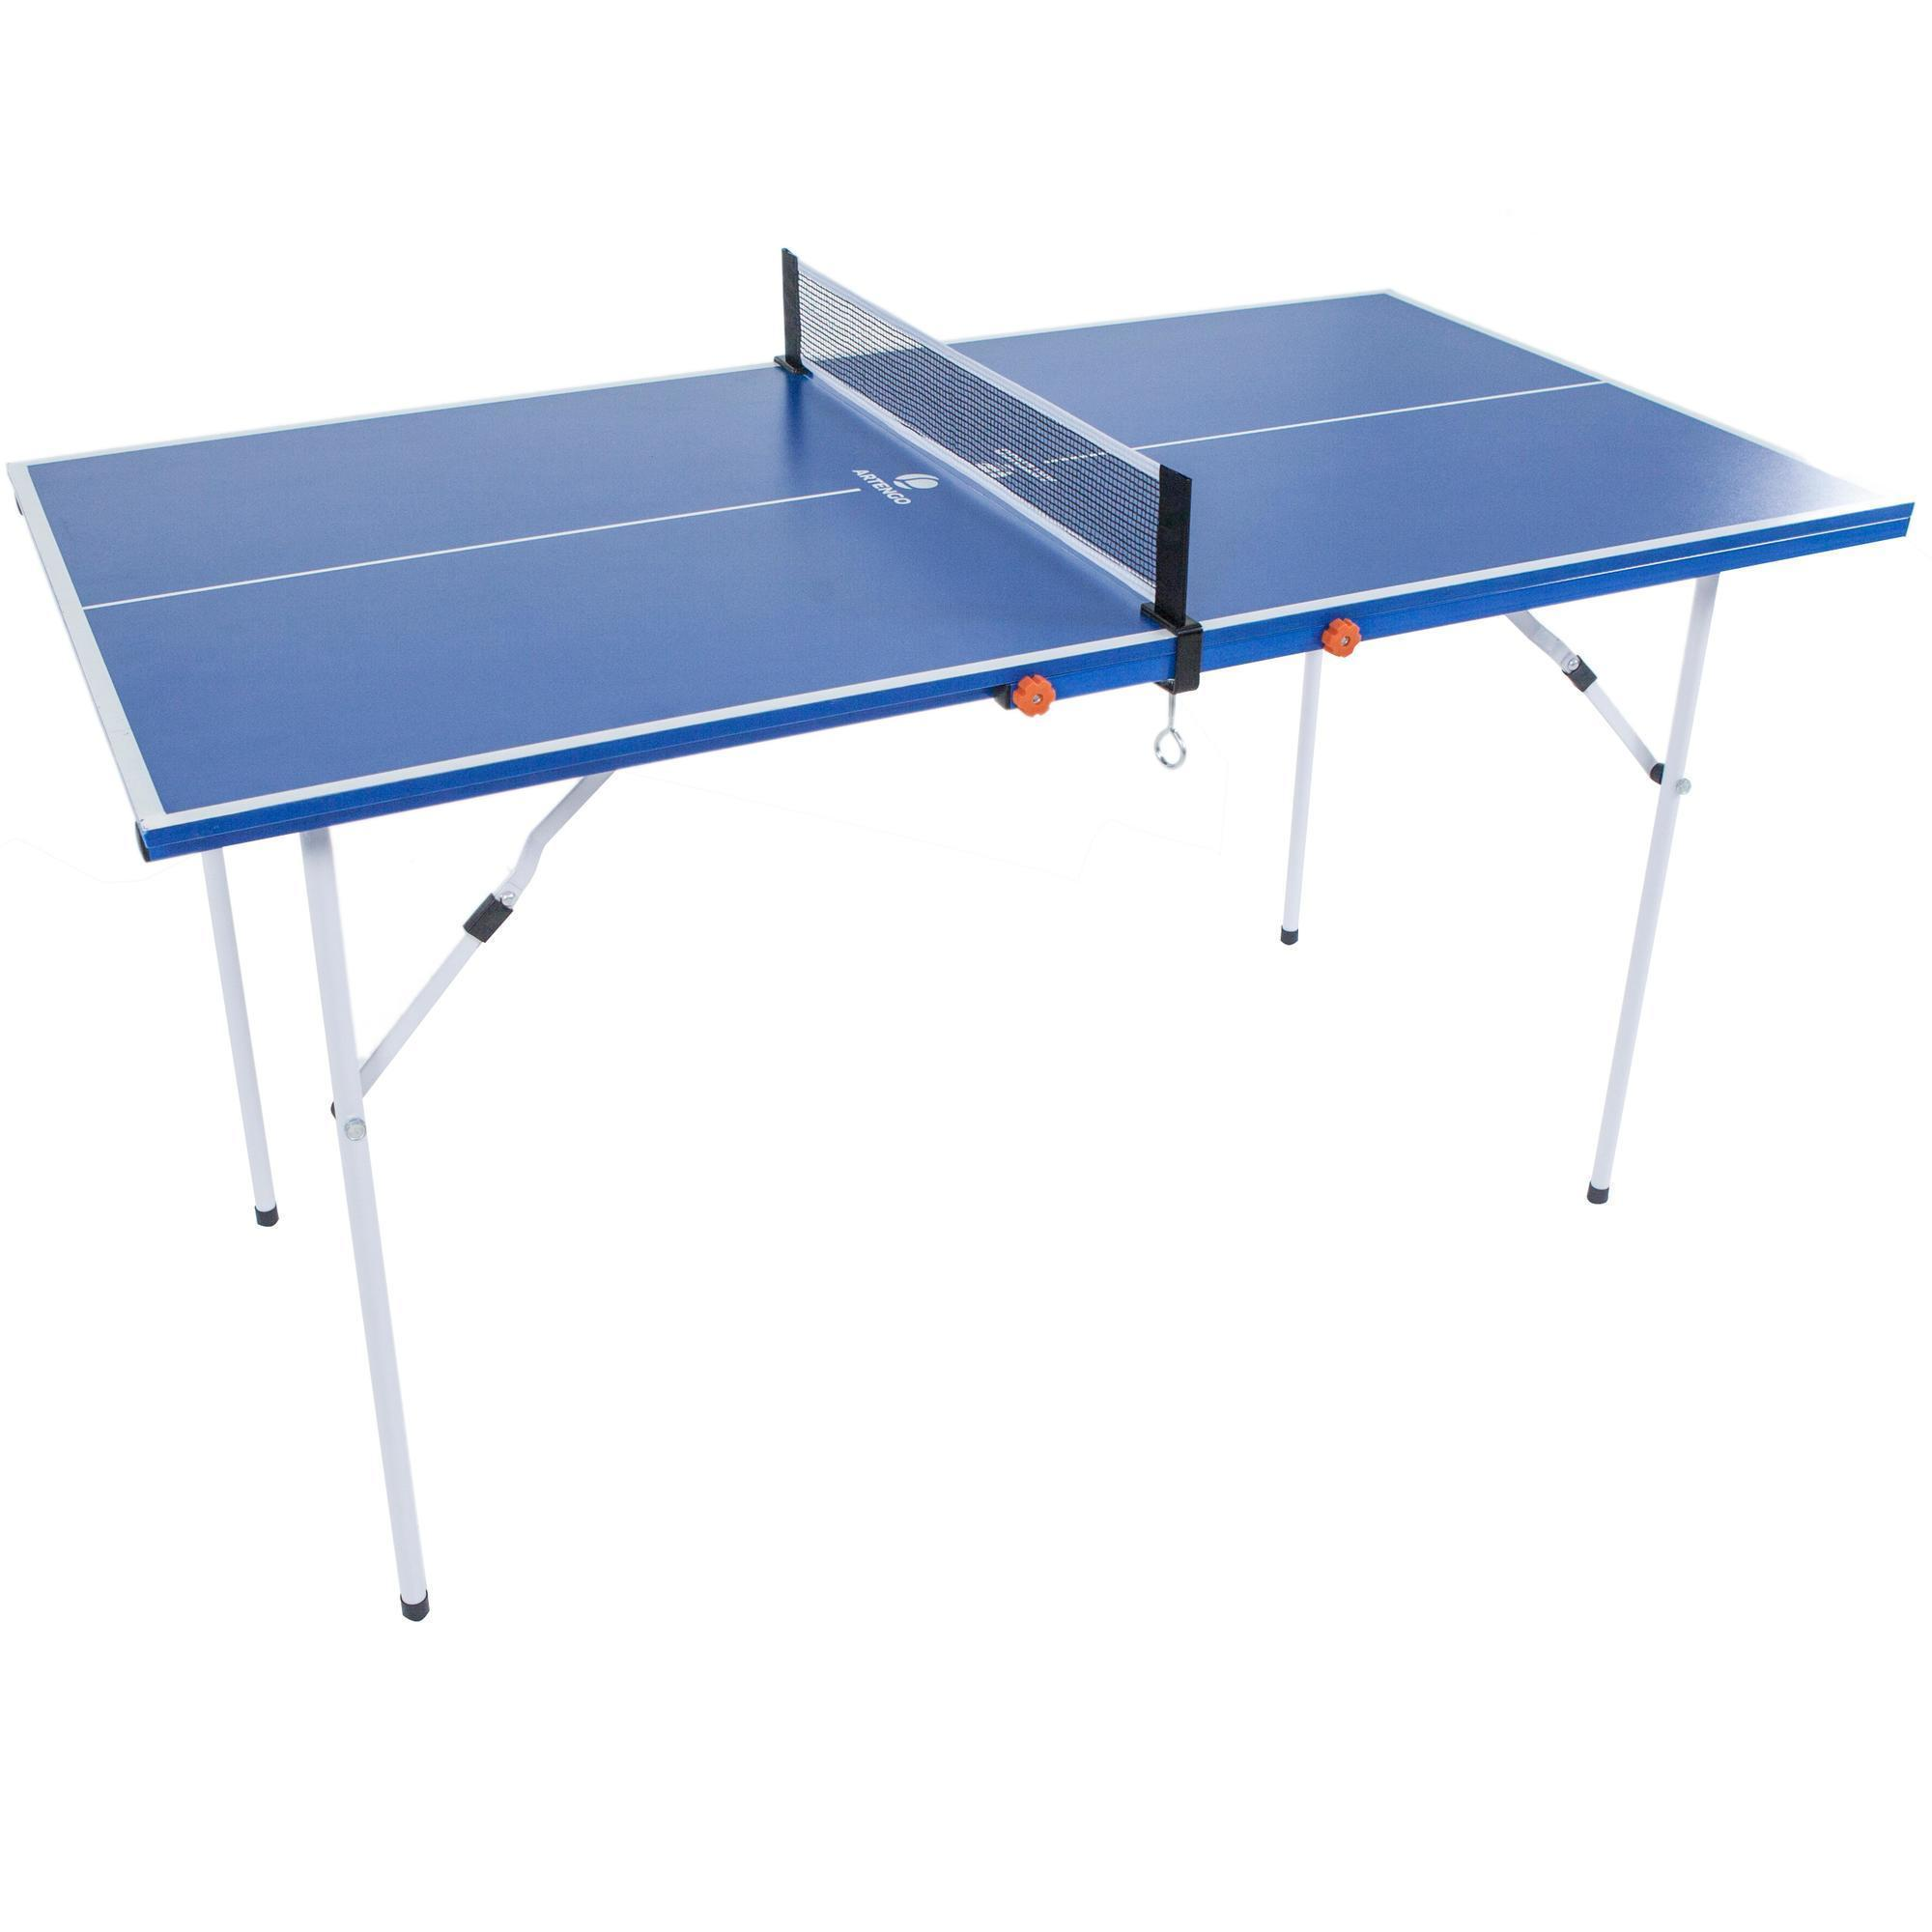 Mini Ft Free Table Tennis Table Artengo